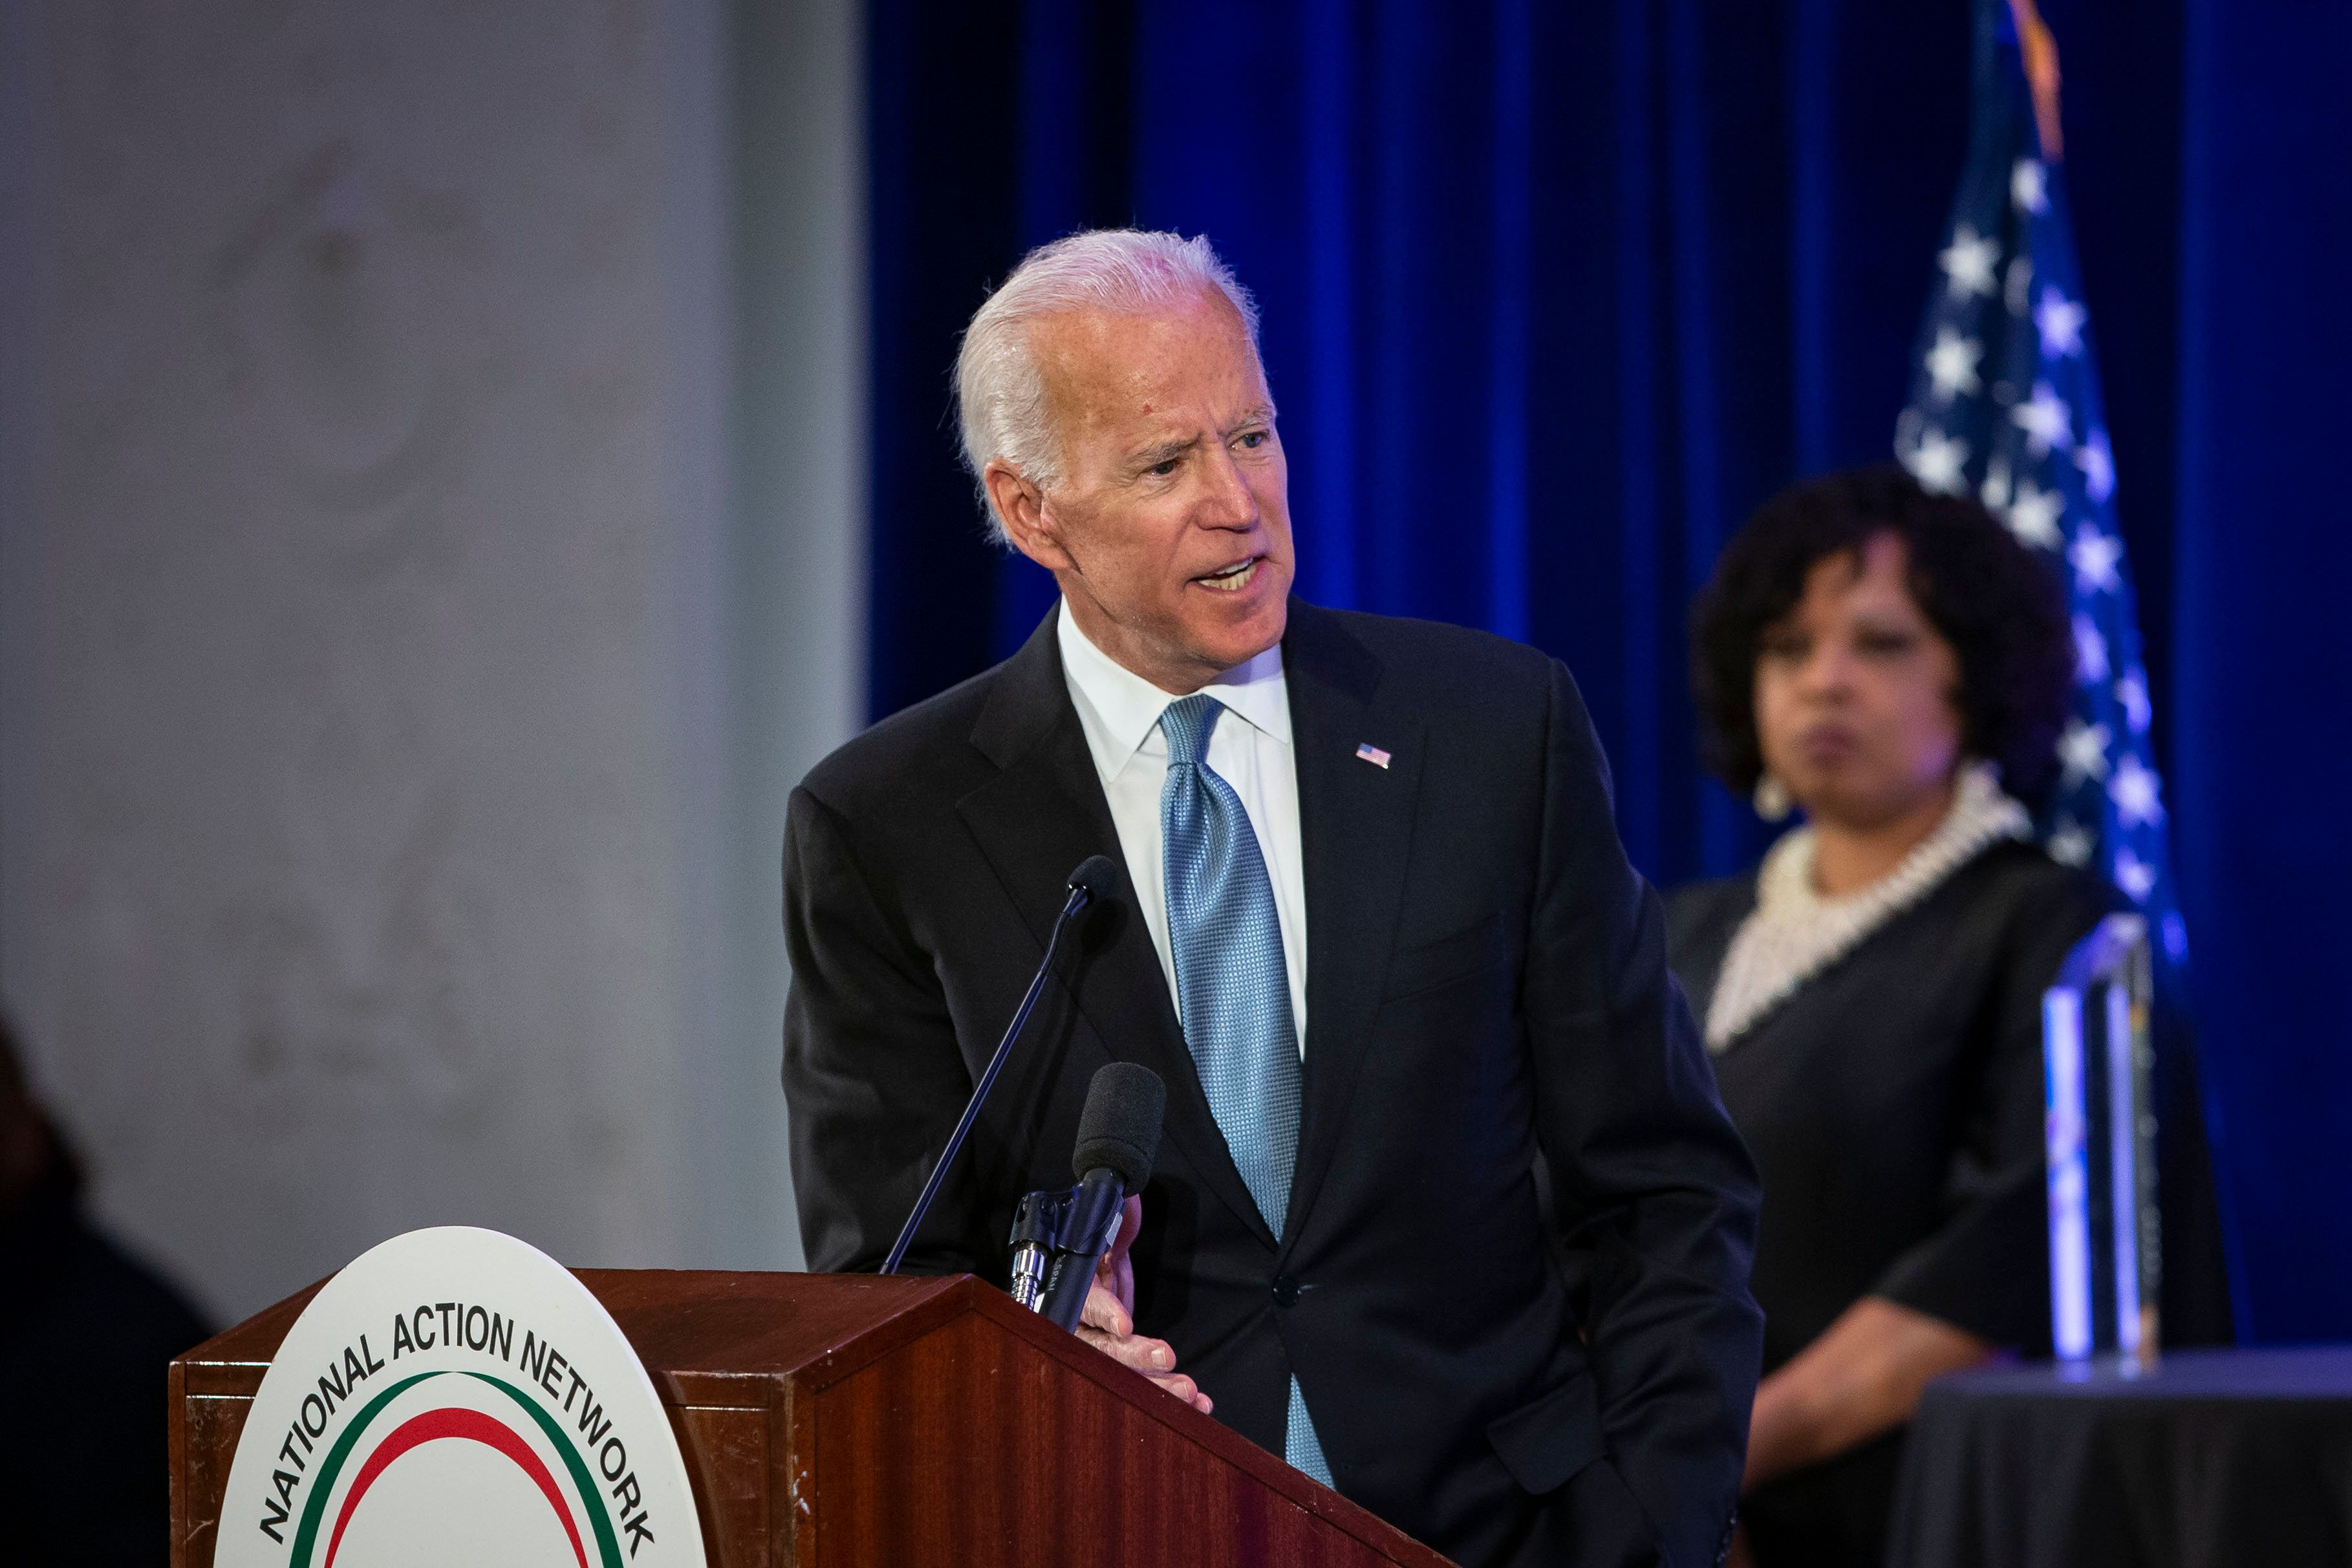 Joe Biden White America Has To Admit There Is Systemic Racism